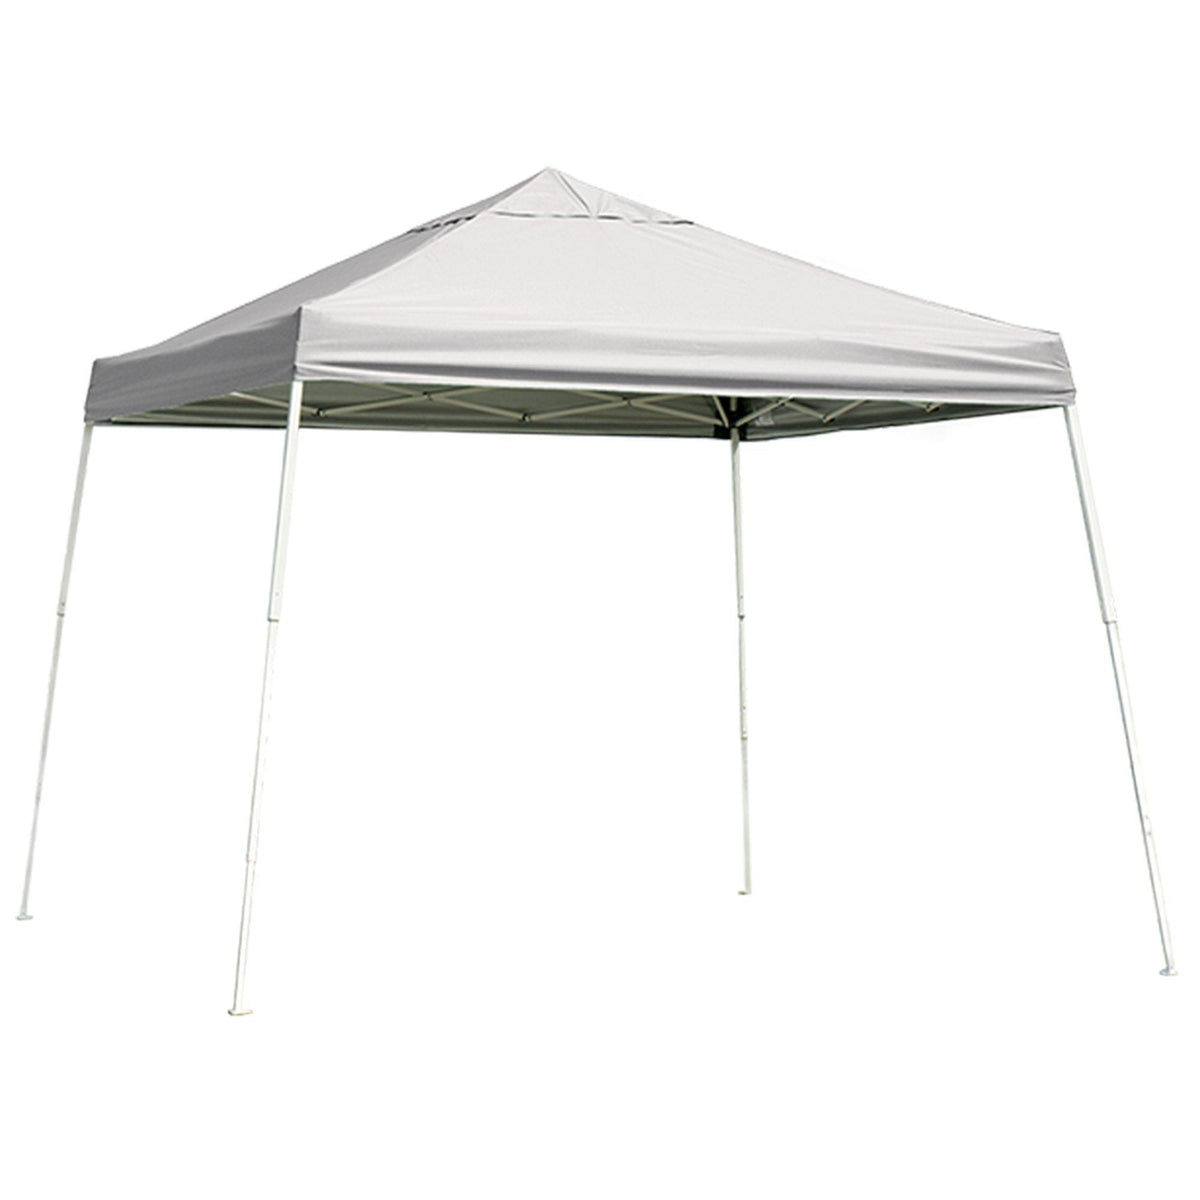 ShelterLogic Slant Leg Pop-Up Canopy with Roller Bag, 12 x 12 ft.